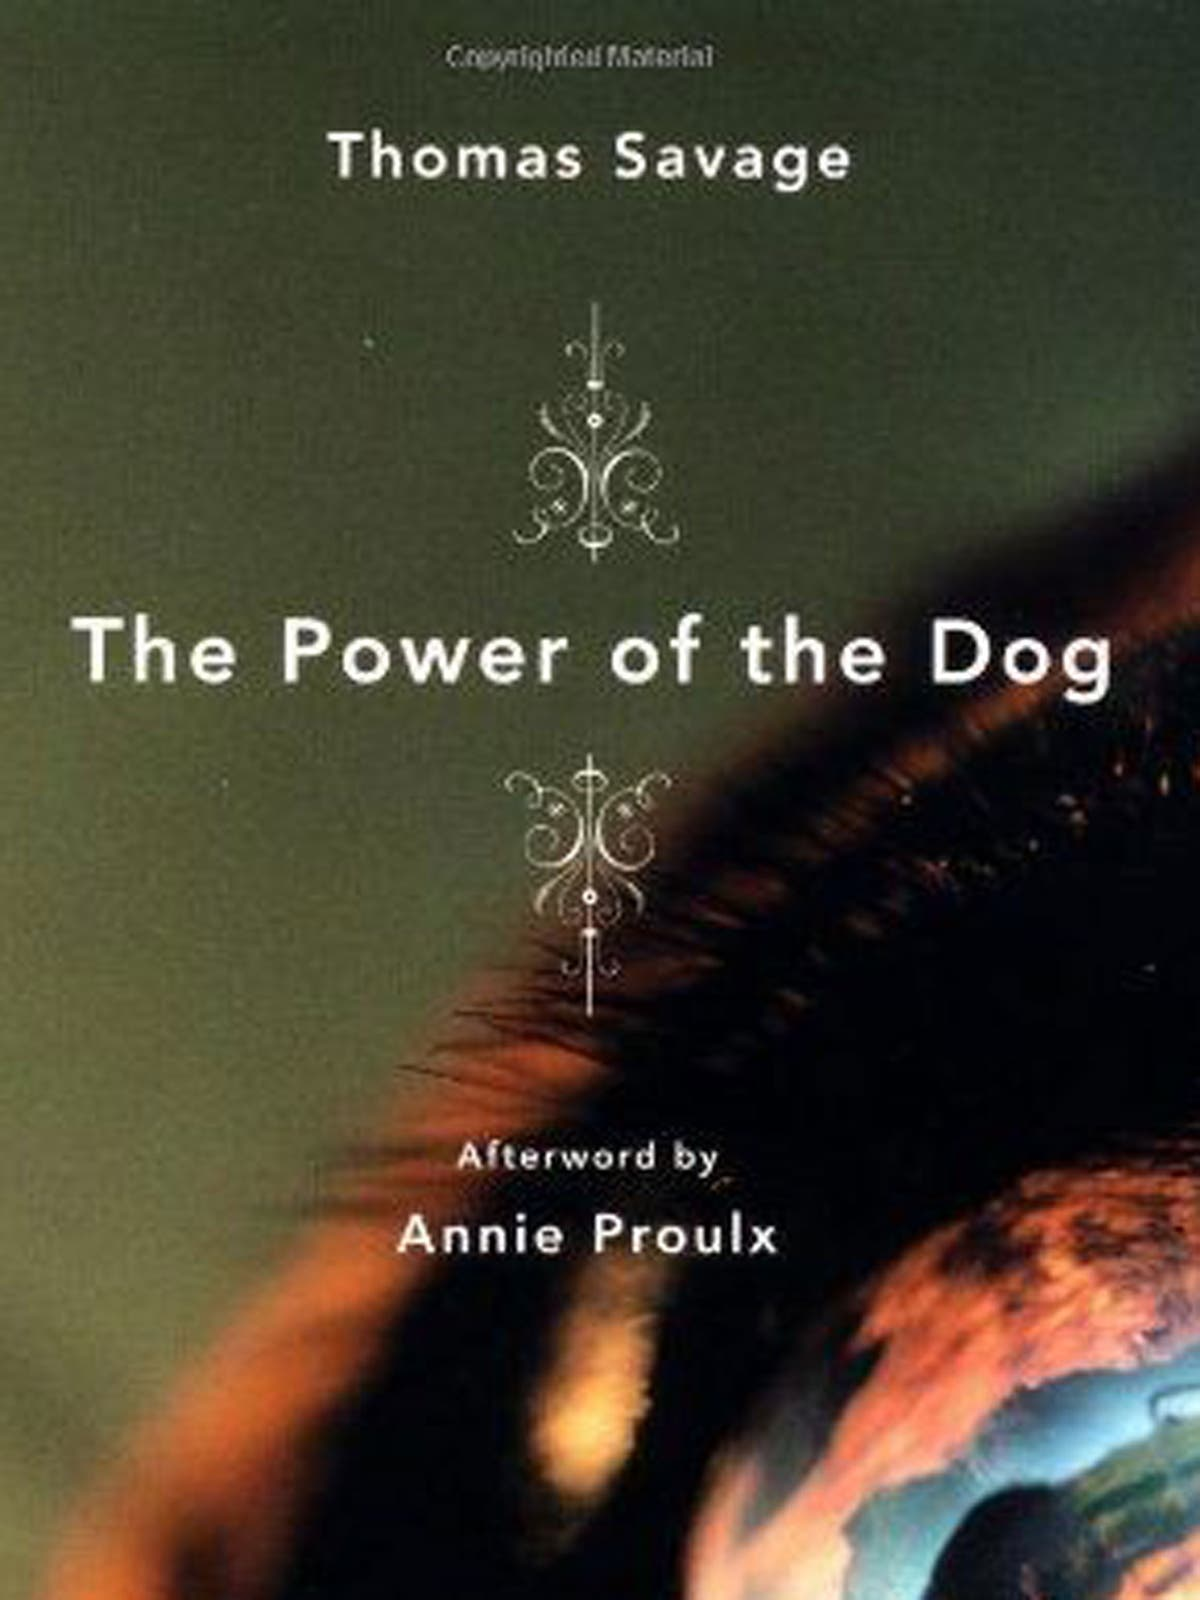 The Power of the Dog by Thomas Savage, book review: Masculinity under the  microscope in a tale with bite | The Independent | The Independent